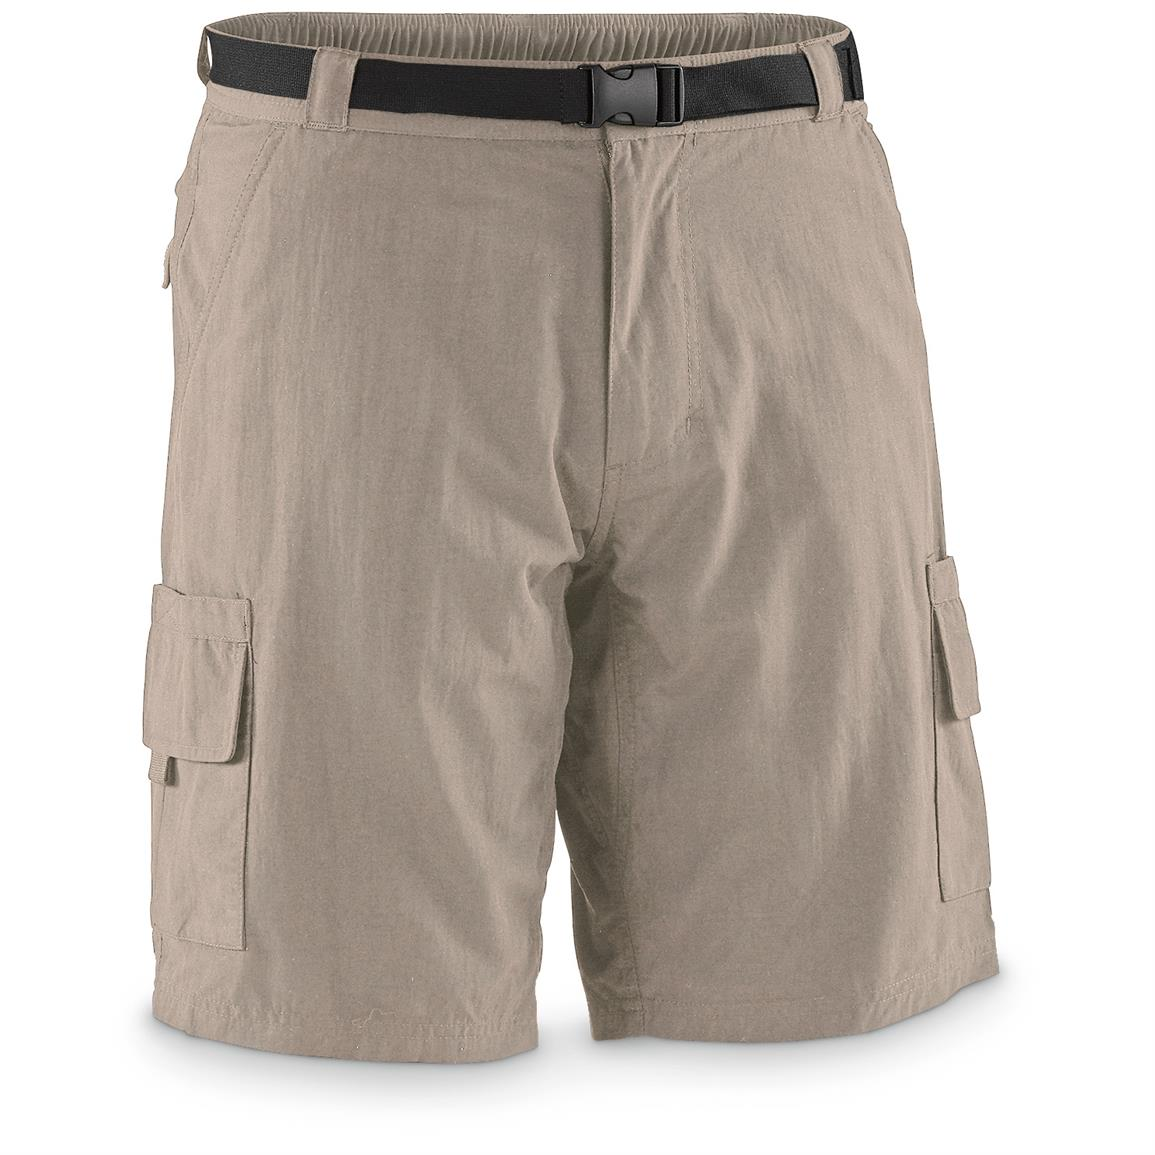 "Guide Gear Men's Cargo River Shorts, 10"" Inseam, Khaki"